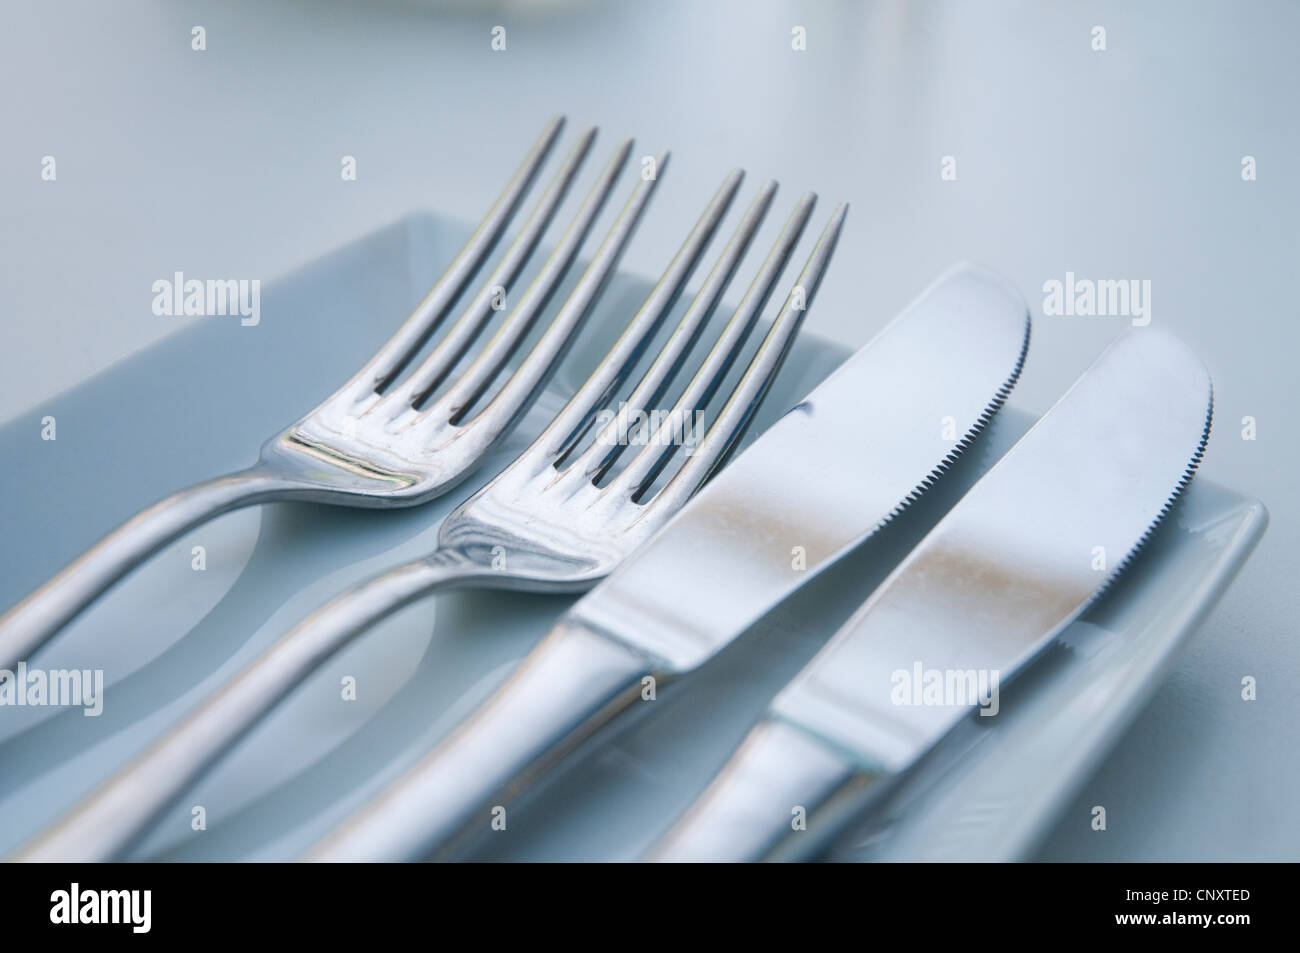 Two forks and two knifes. Close view. - Stock Image